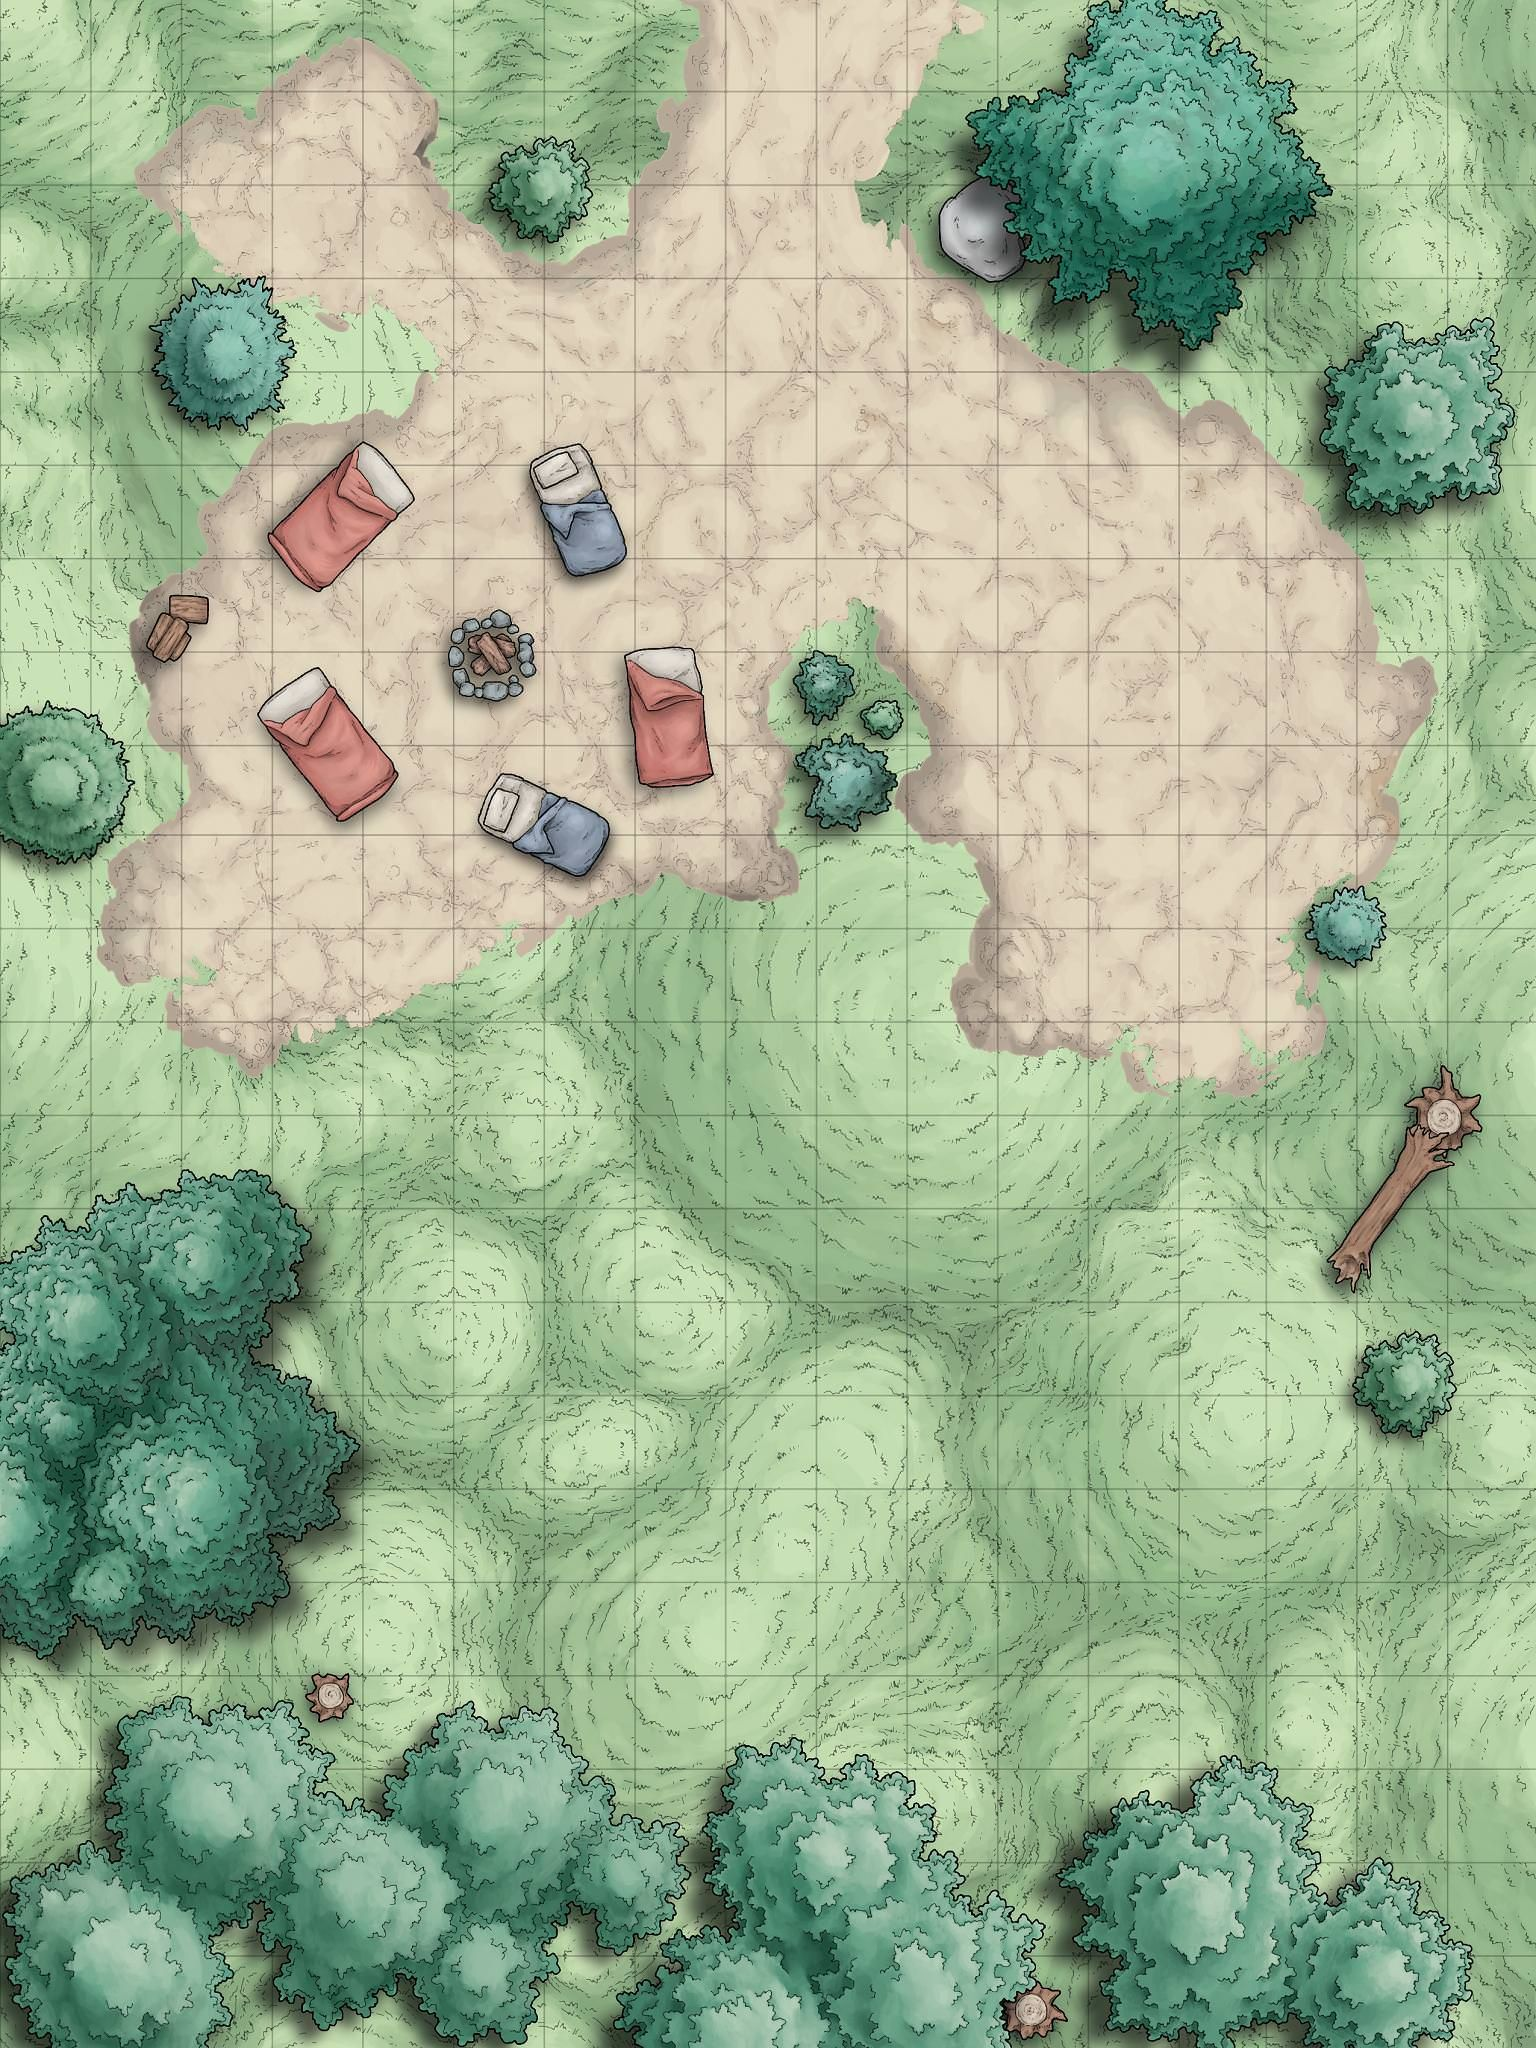 Random Encounter Battle Maps